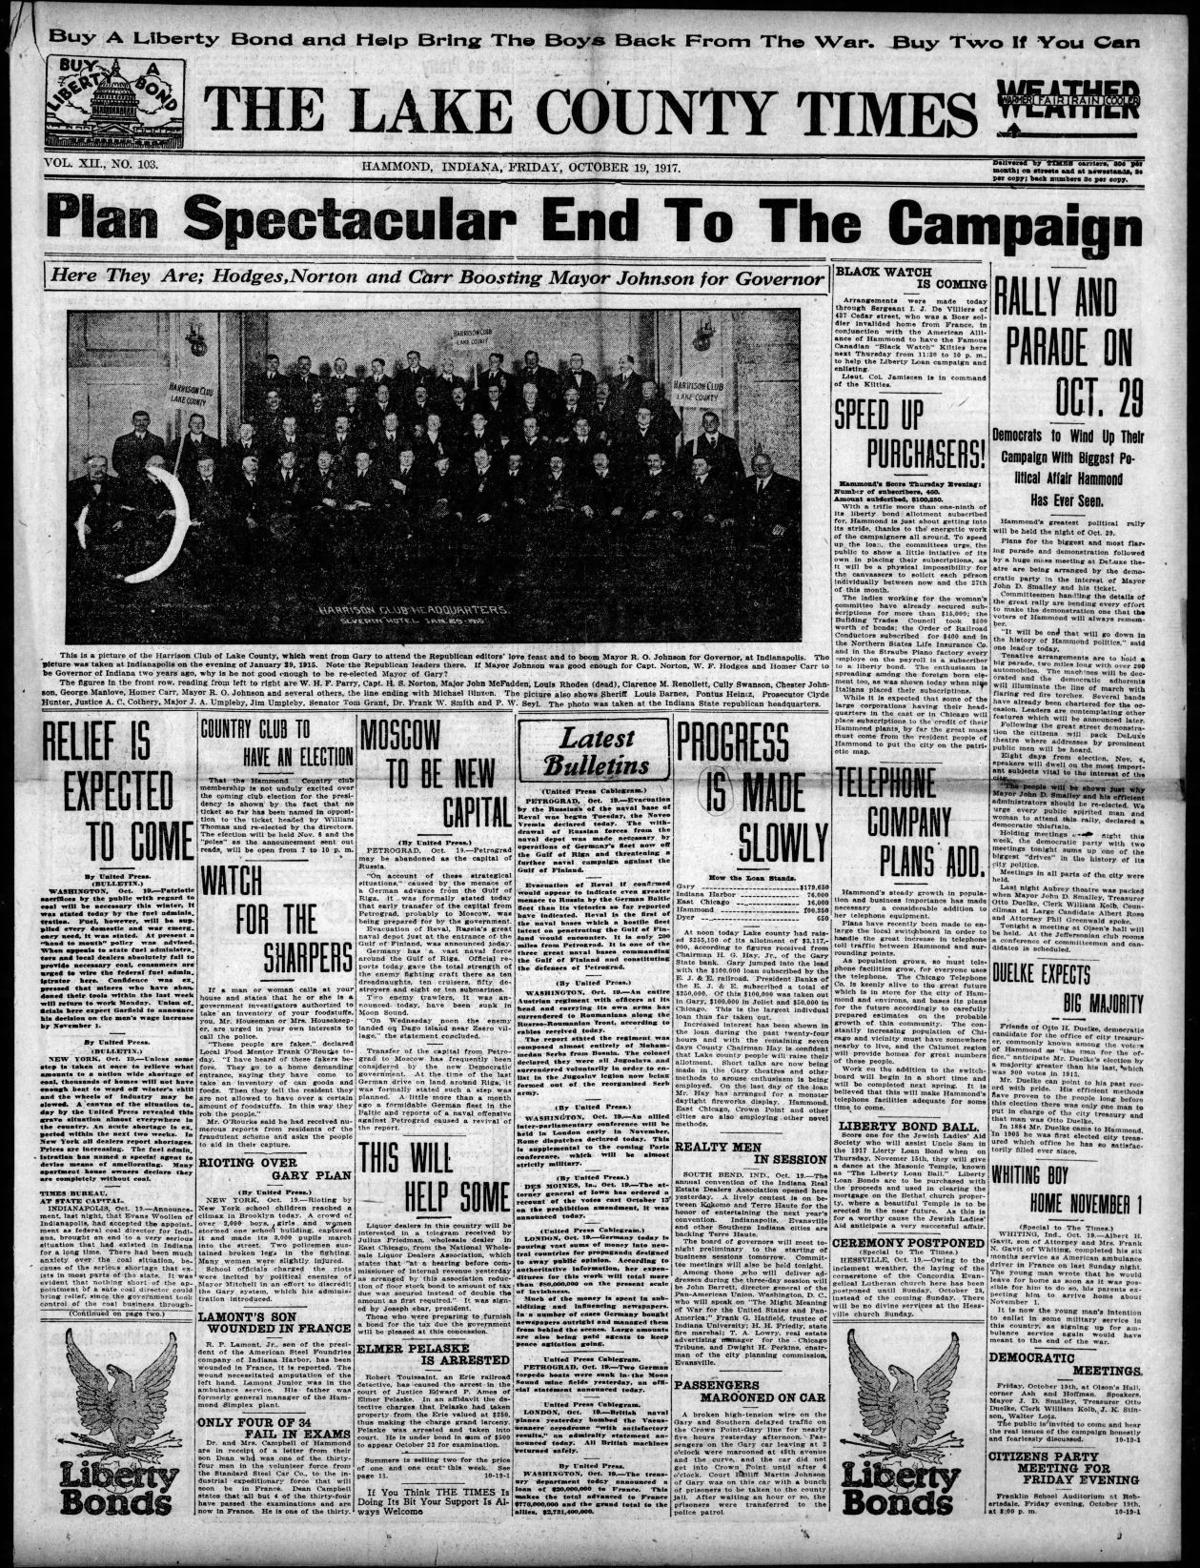 Oct. 19, 1917: Plan Spectacular End To The Campaign